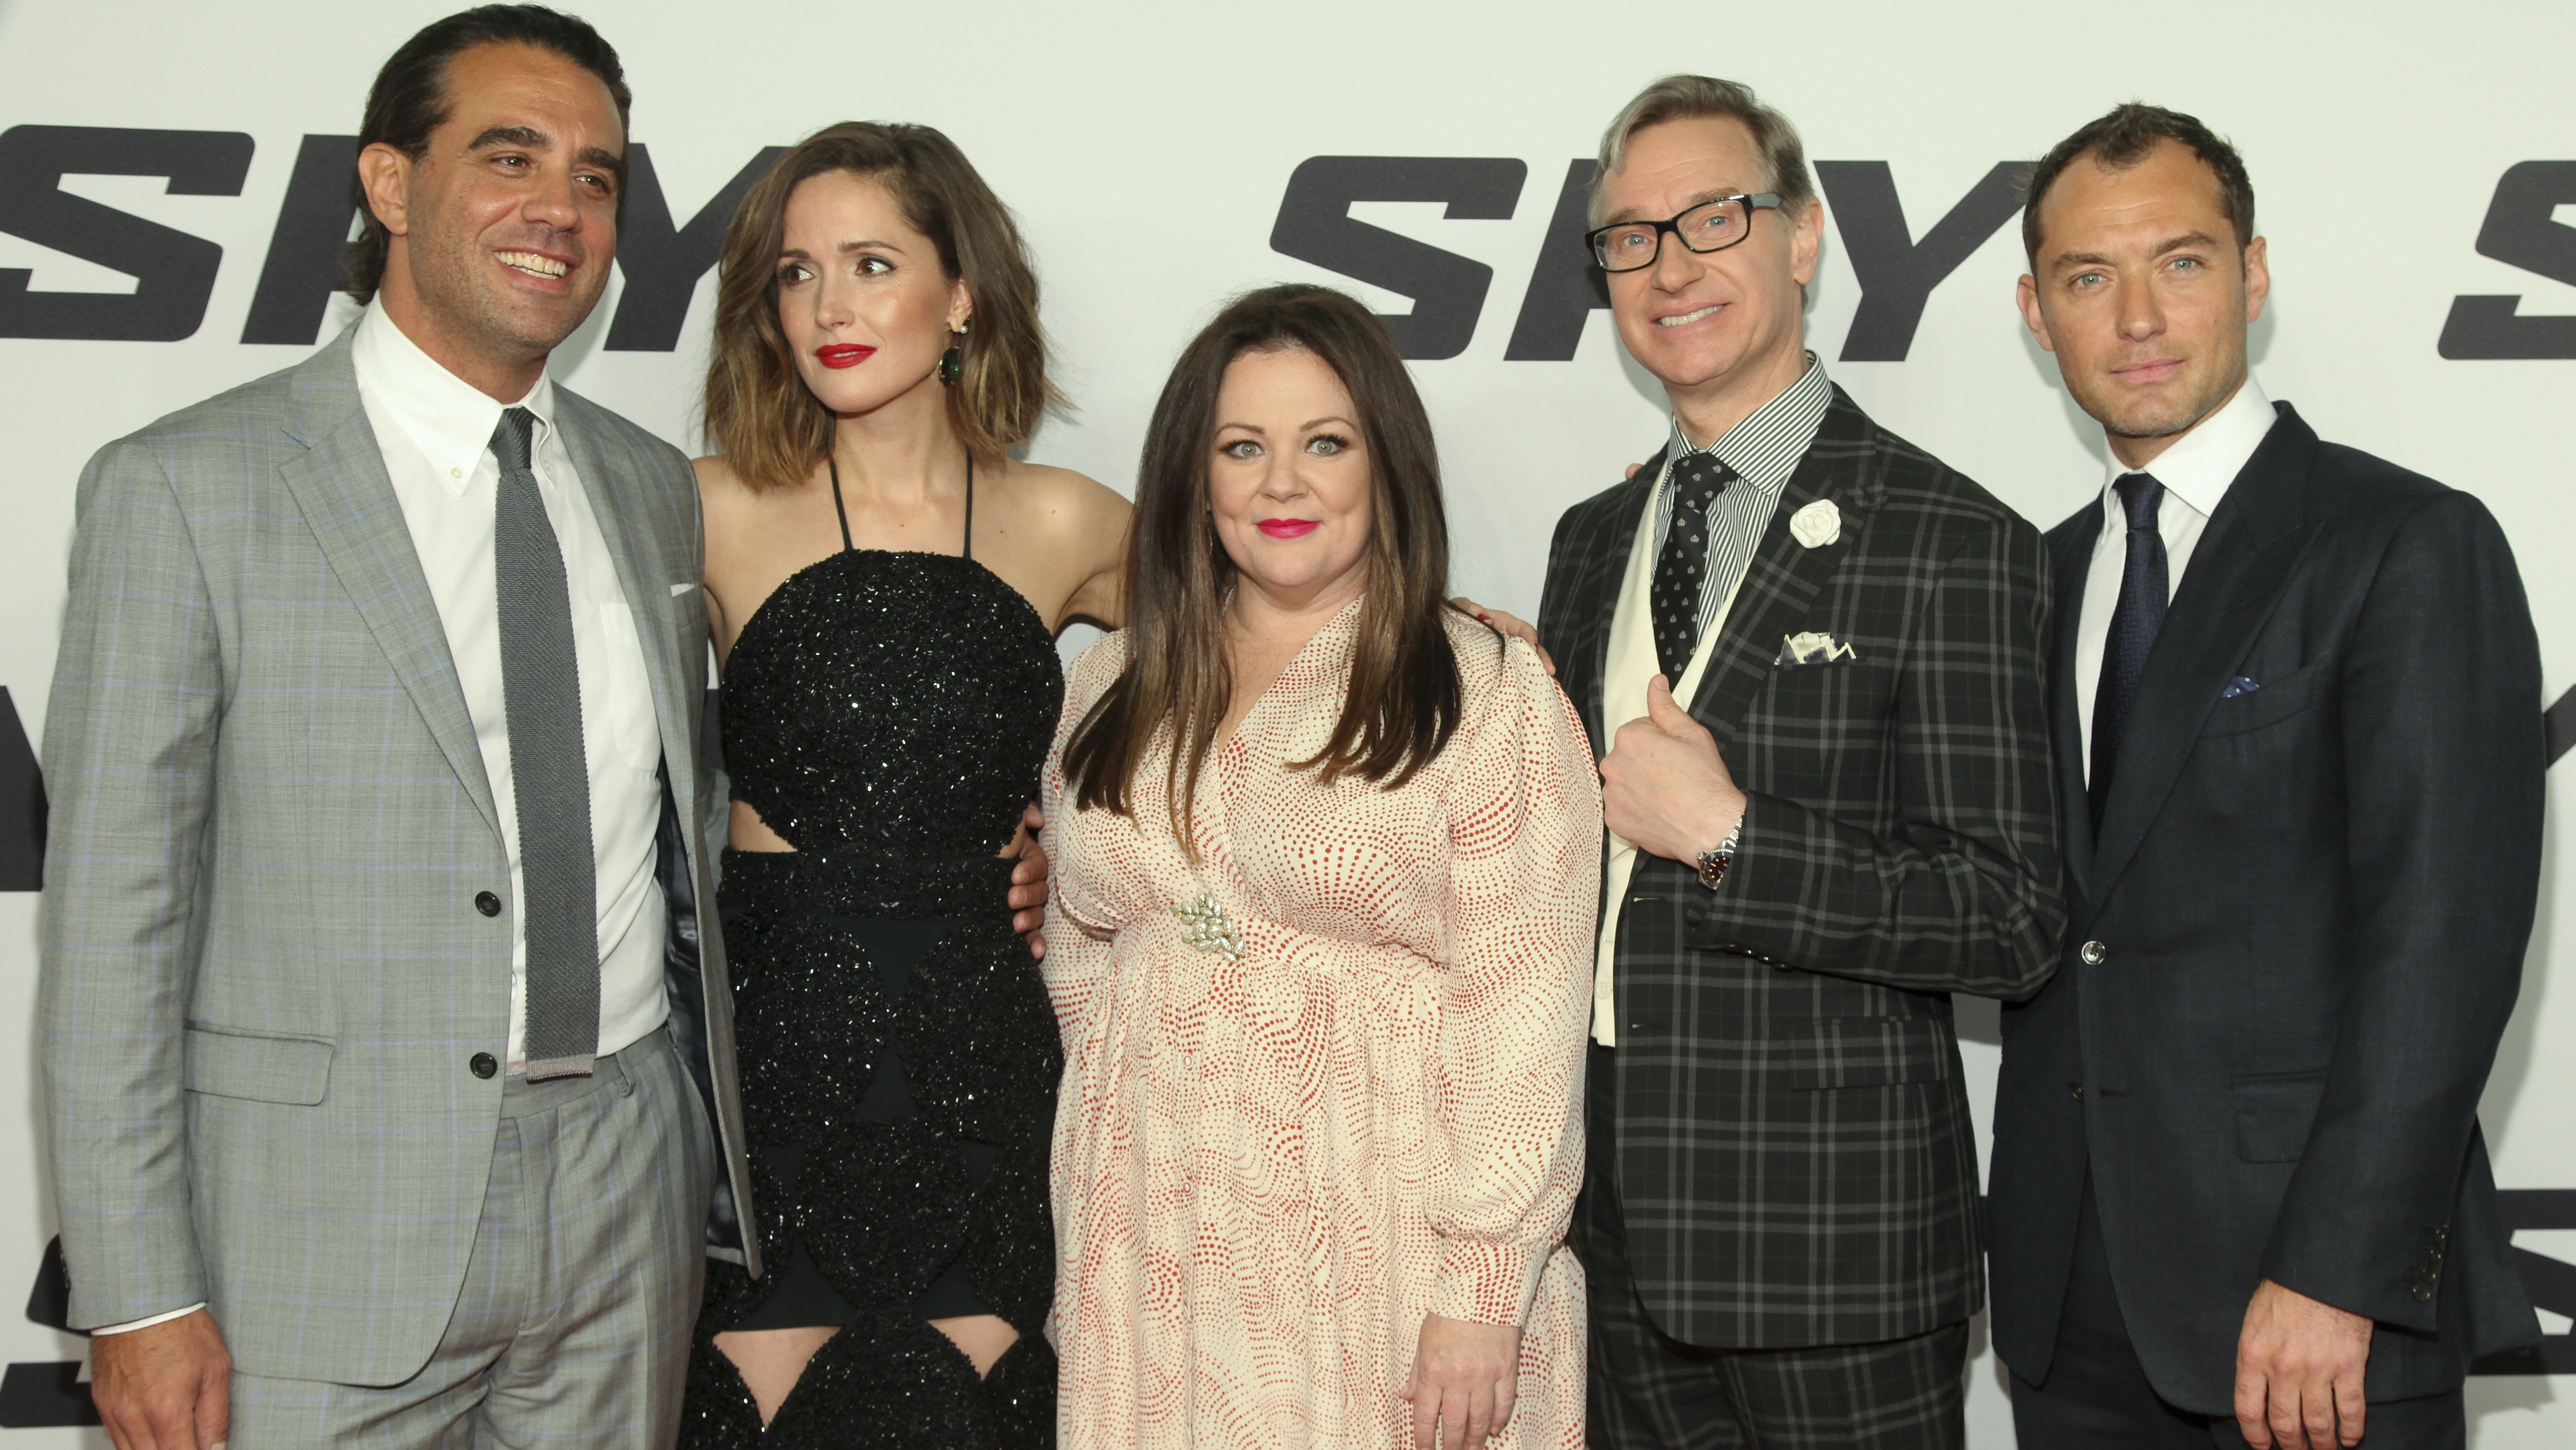 Spy Premiere Mccarthy Feig And Byrne On Real Life And Fictional Espionage Inspirations Hollywood Reporter